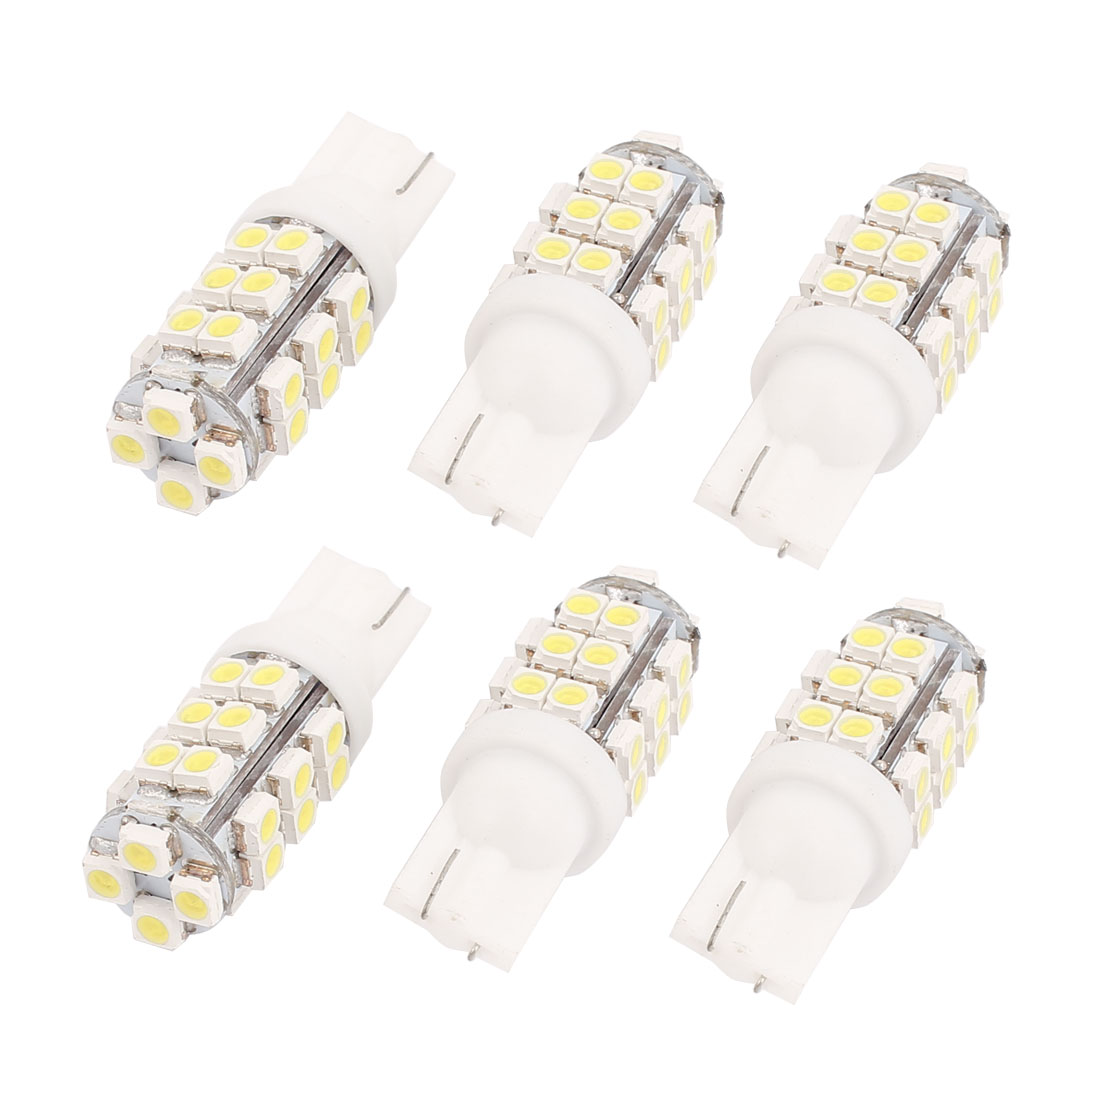 6 Pcs T10 1210 28-SMD White LED Wedge Map Dome Roof Light Bulb Lamp 12V Internal